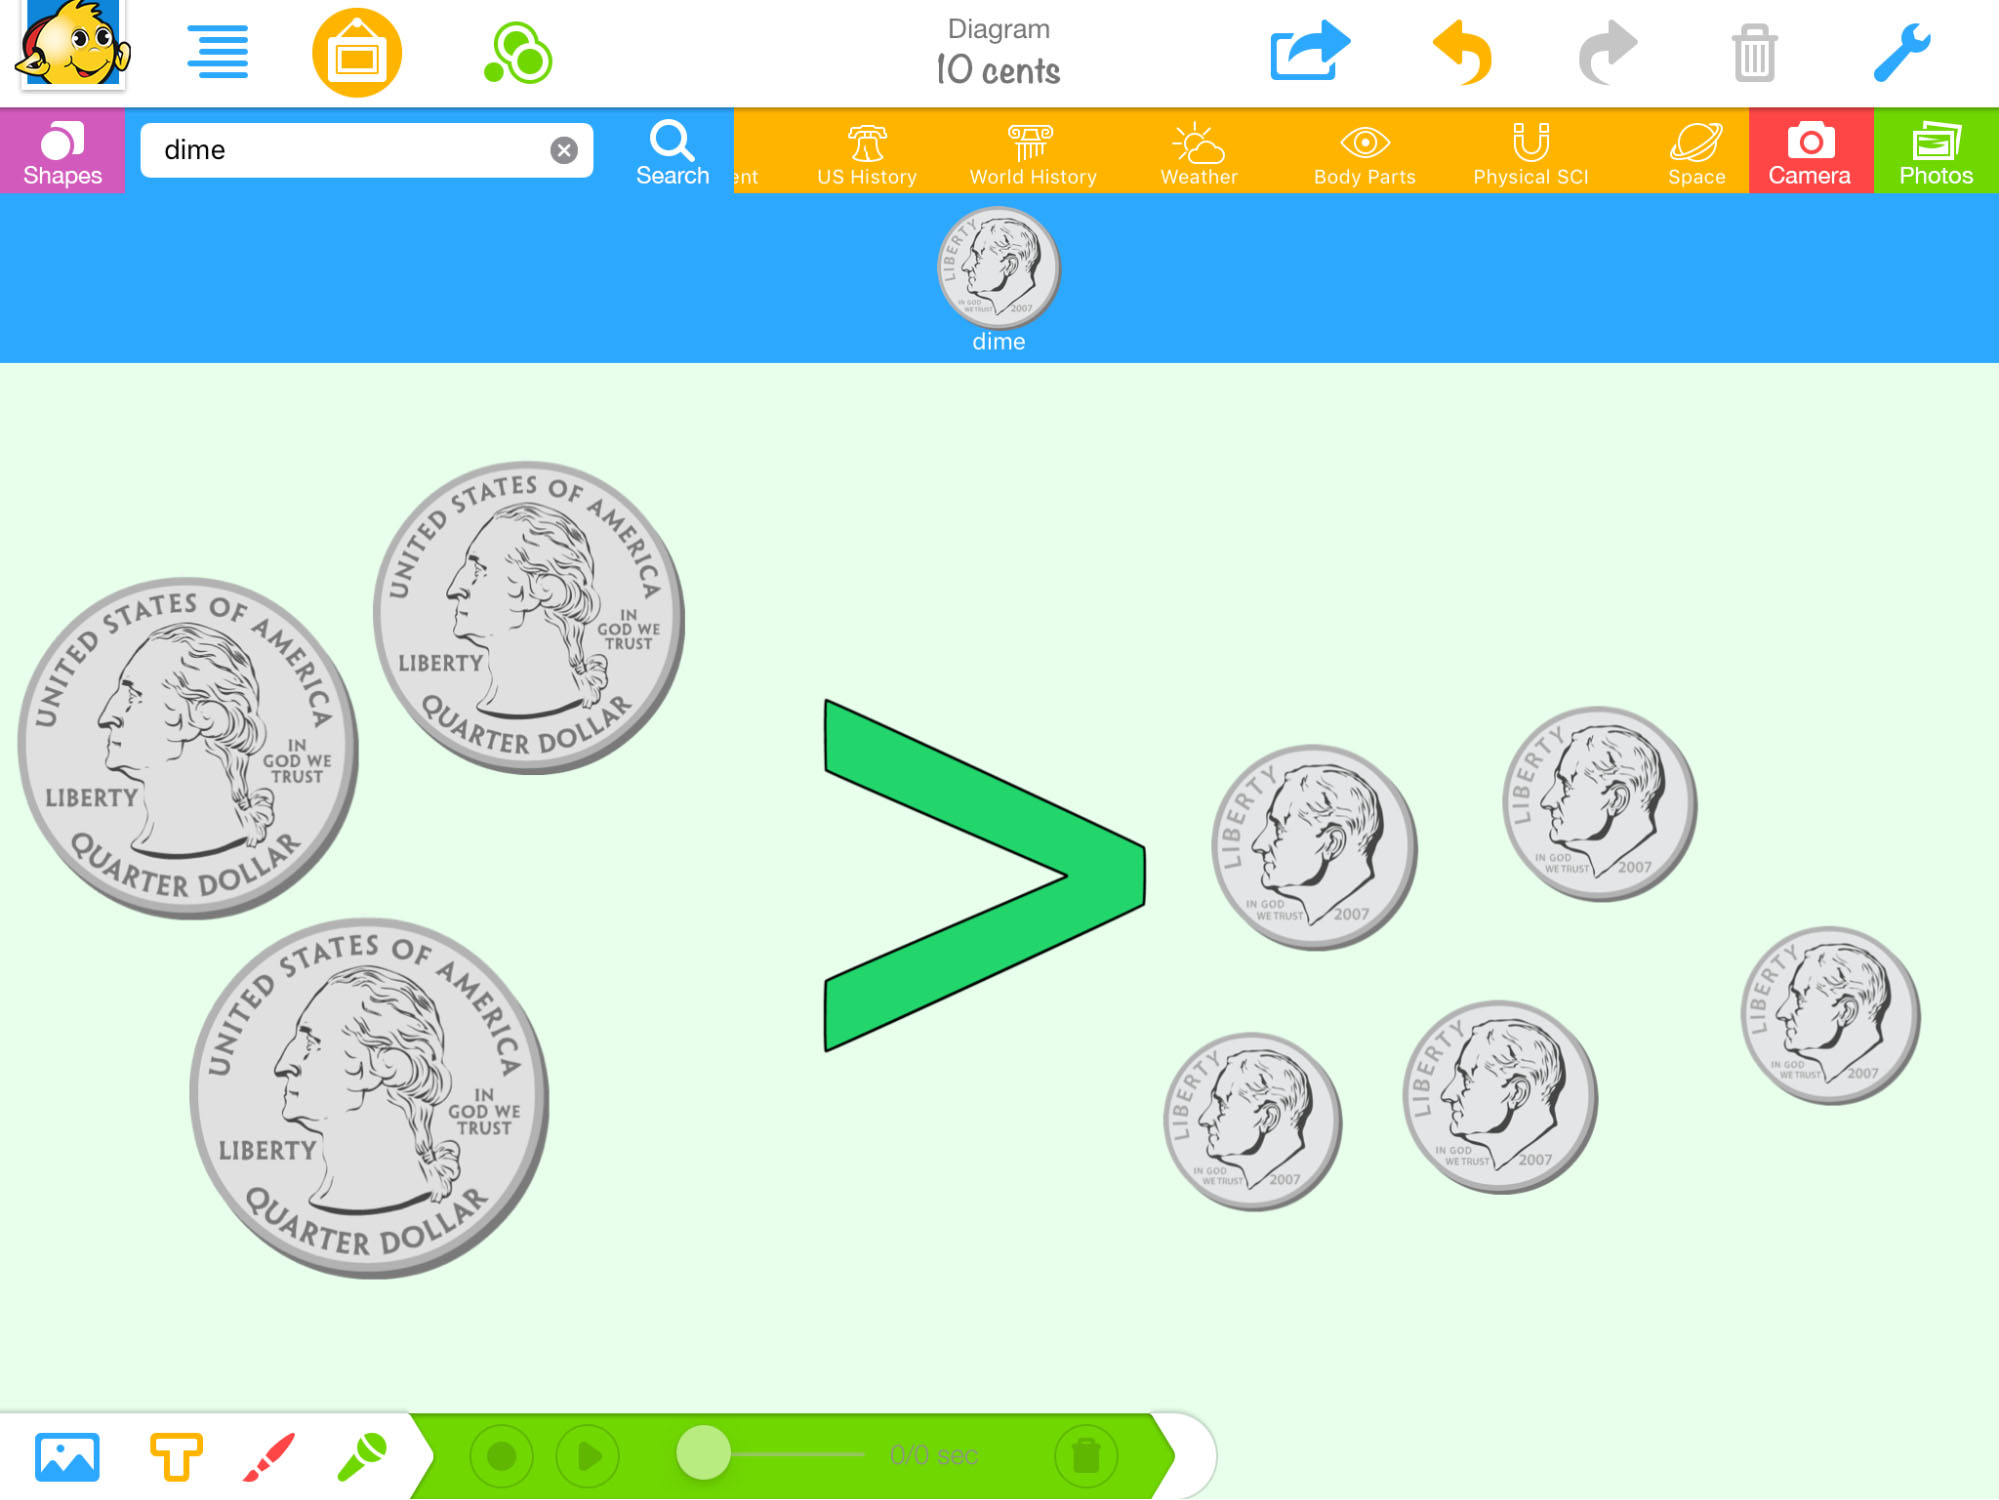 images of coins